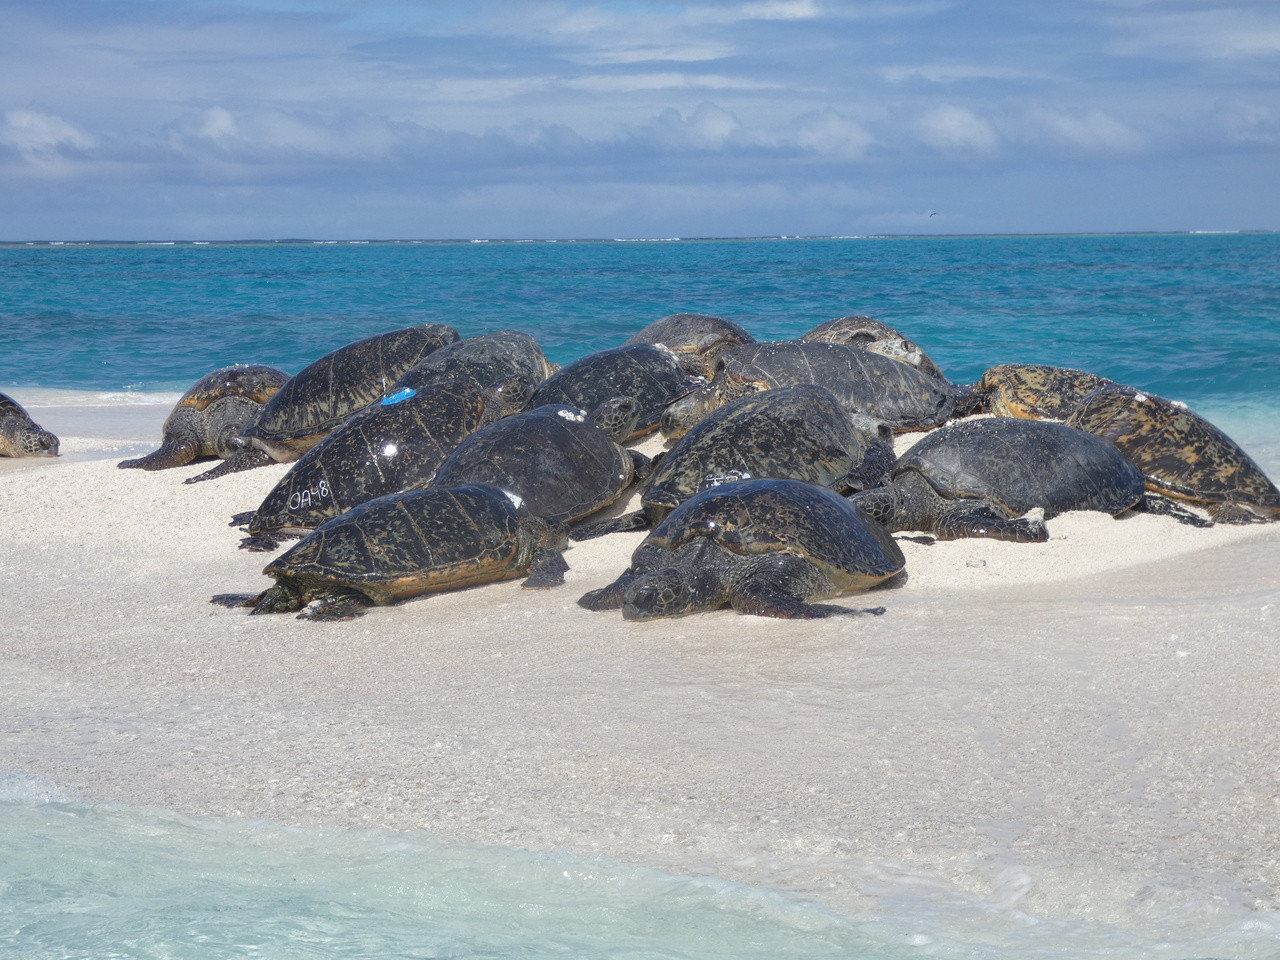 Motherload and other sea turtles basking on Trig Island, French Frigate Shoals, in the Northwestern Hawaiian Islands.